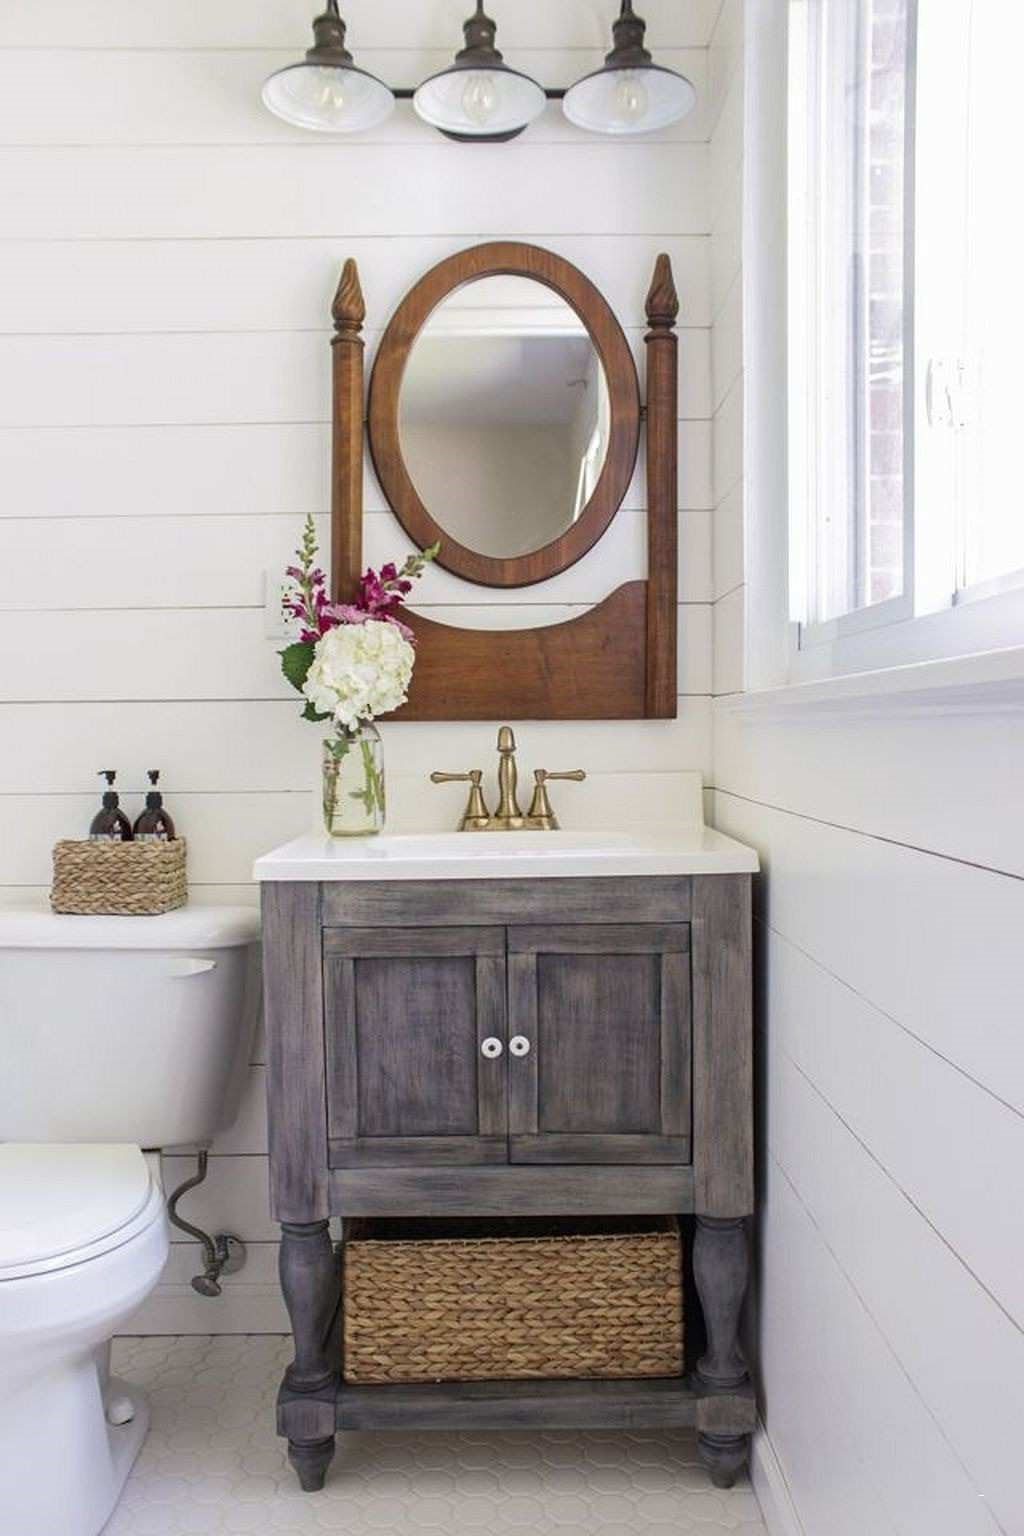 Make a piece of furniture for the bathroom.